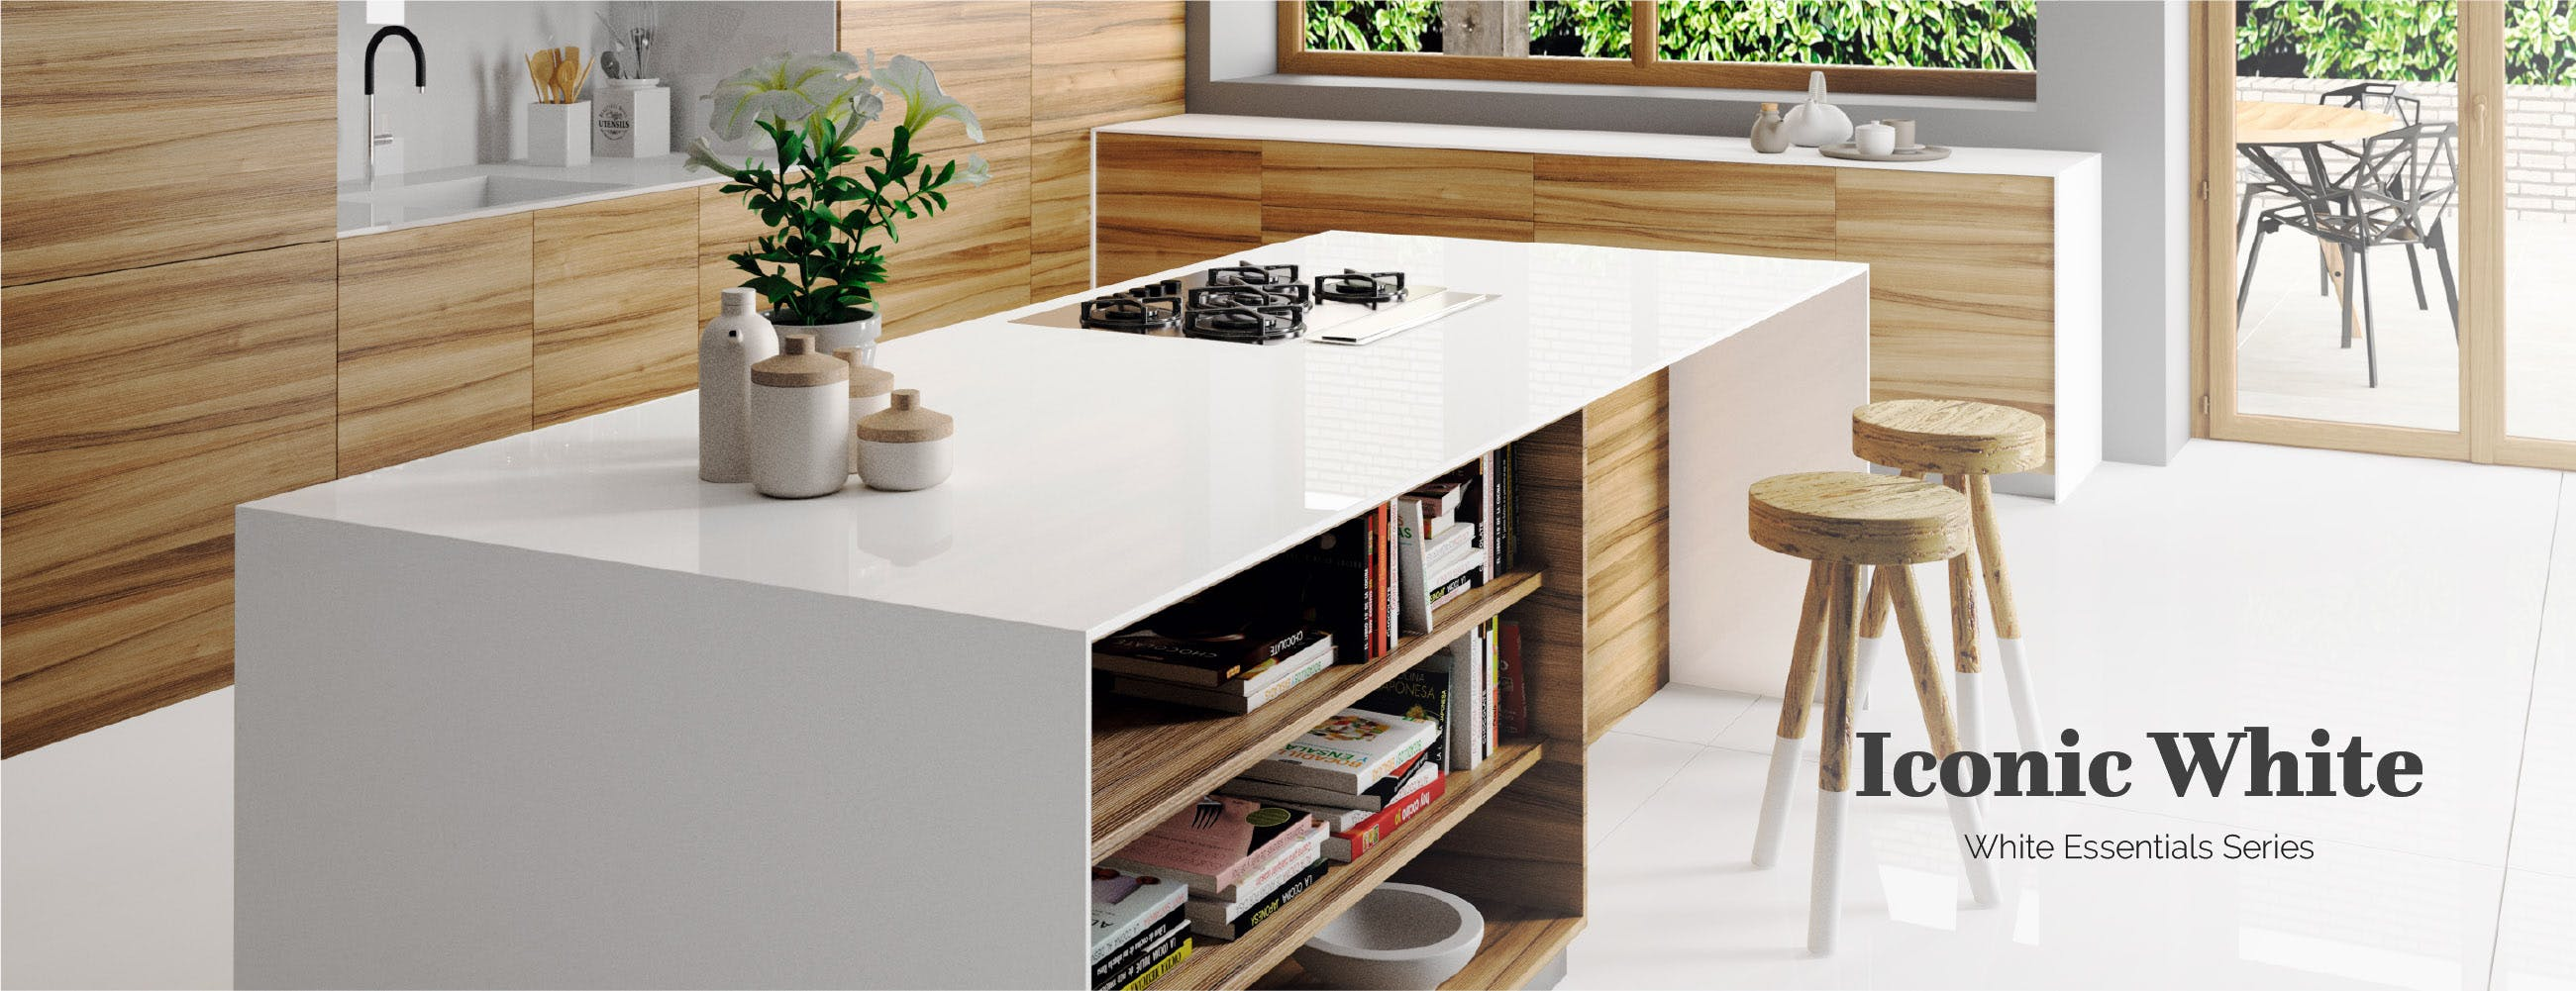 Silestone the leader in quartz surfaces for kitchens and - Encimera de silestone precio ...